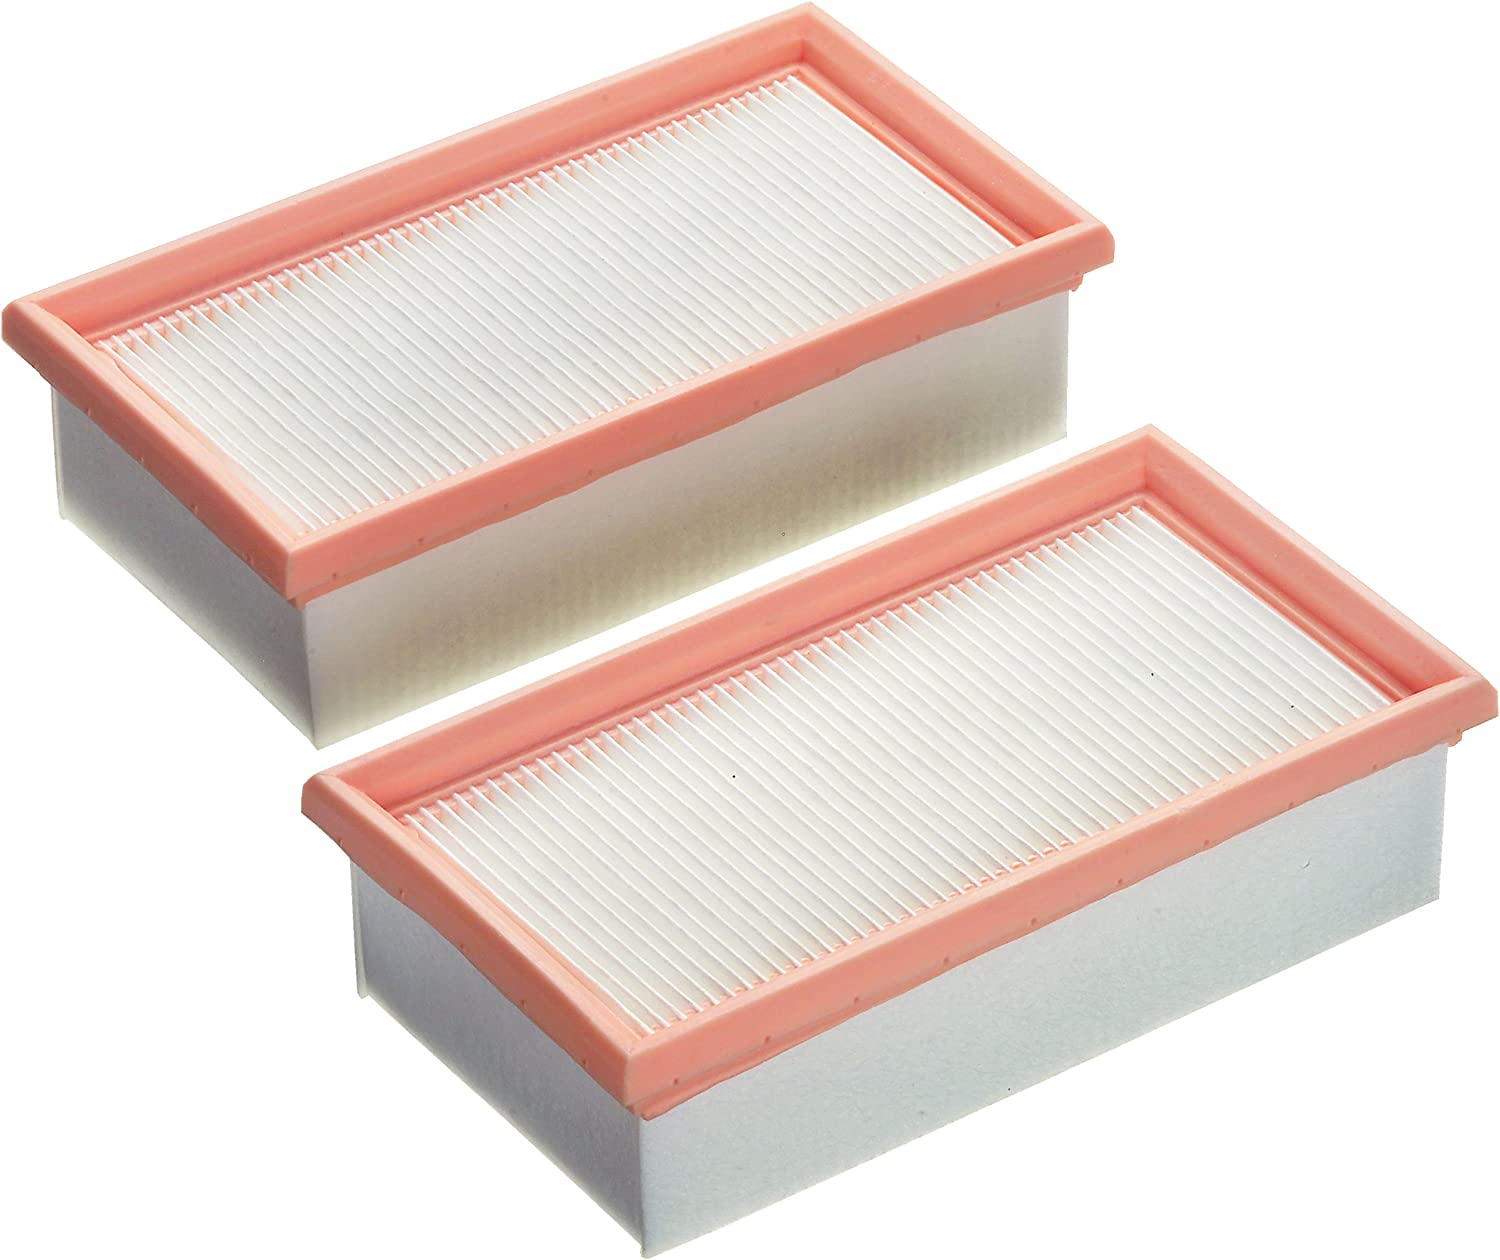 Festool 493334 HEPA Filter Element For CT 22 And CT 33, 2 Pieces